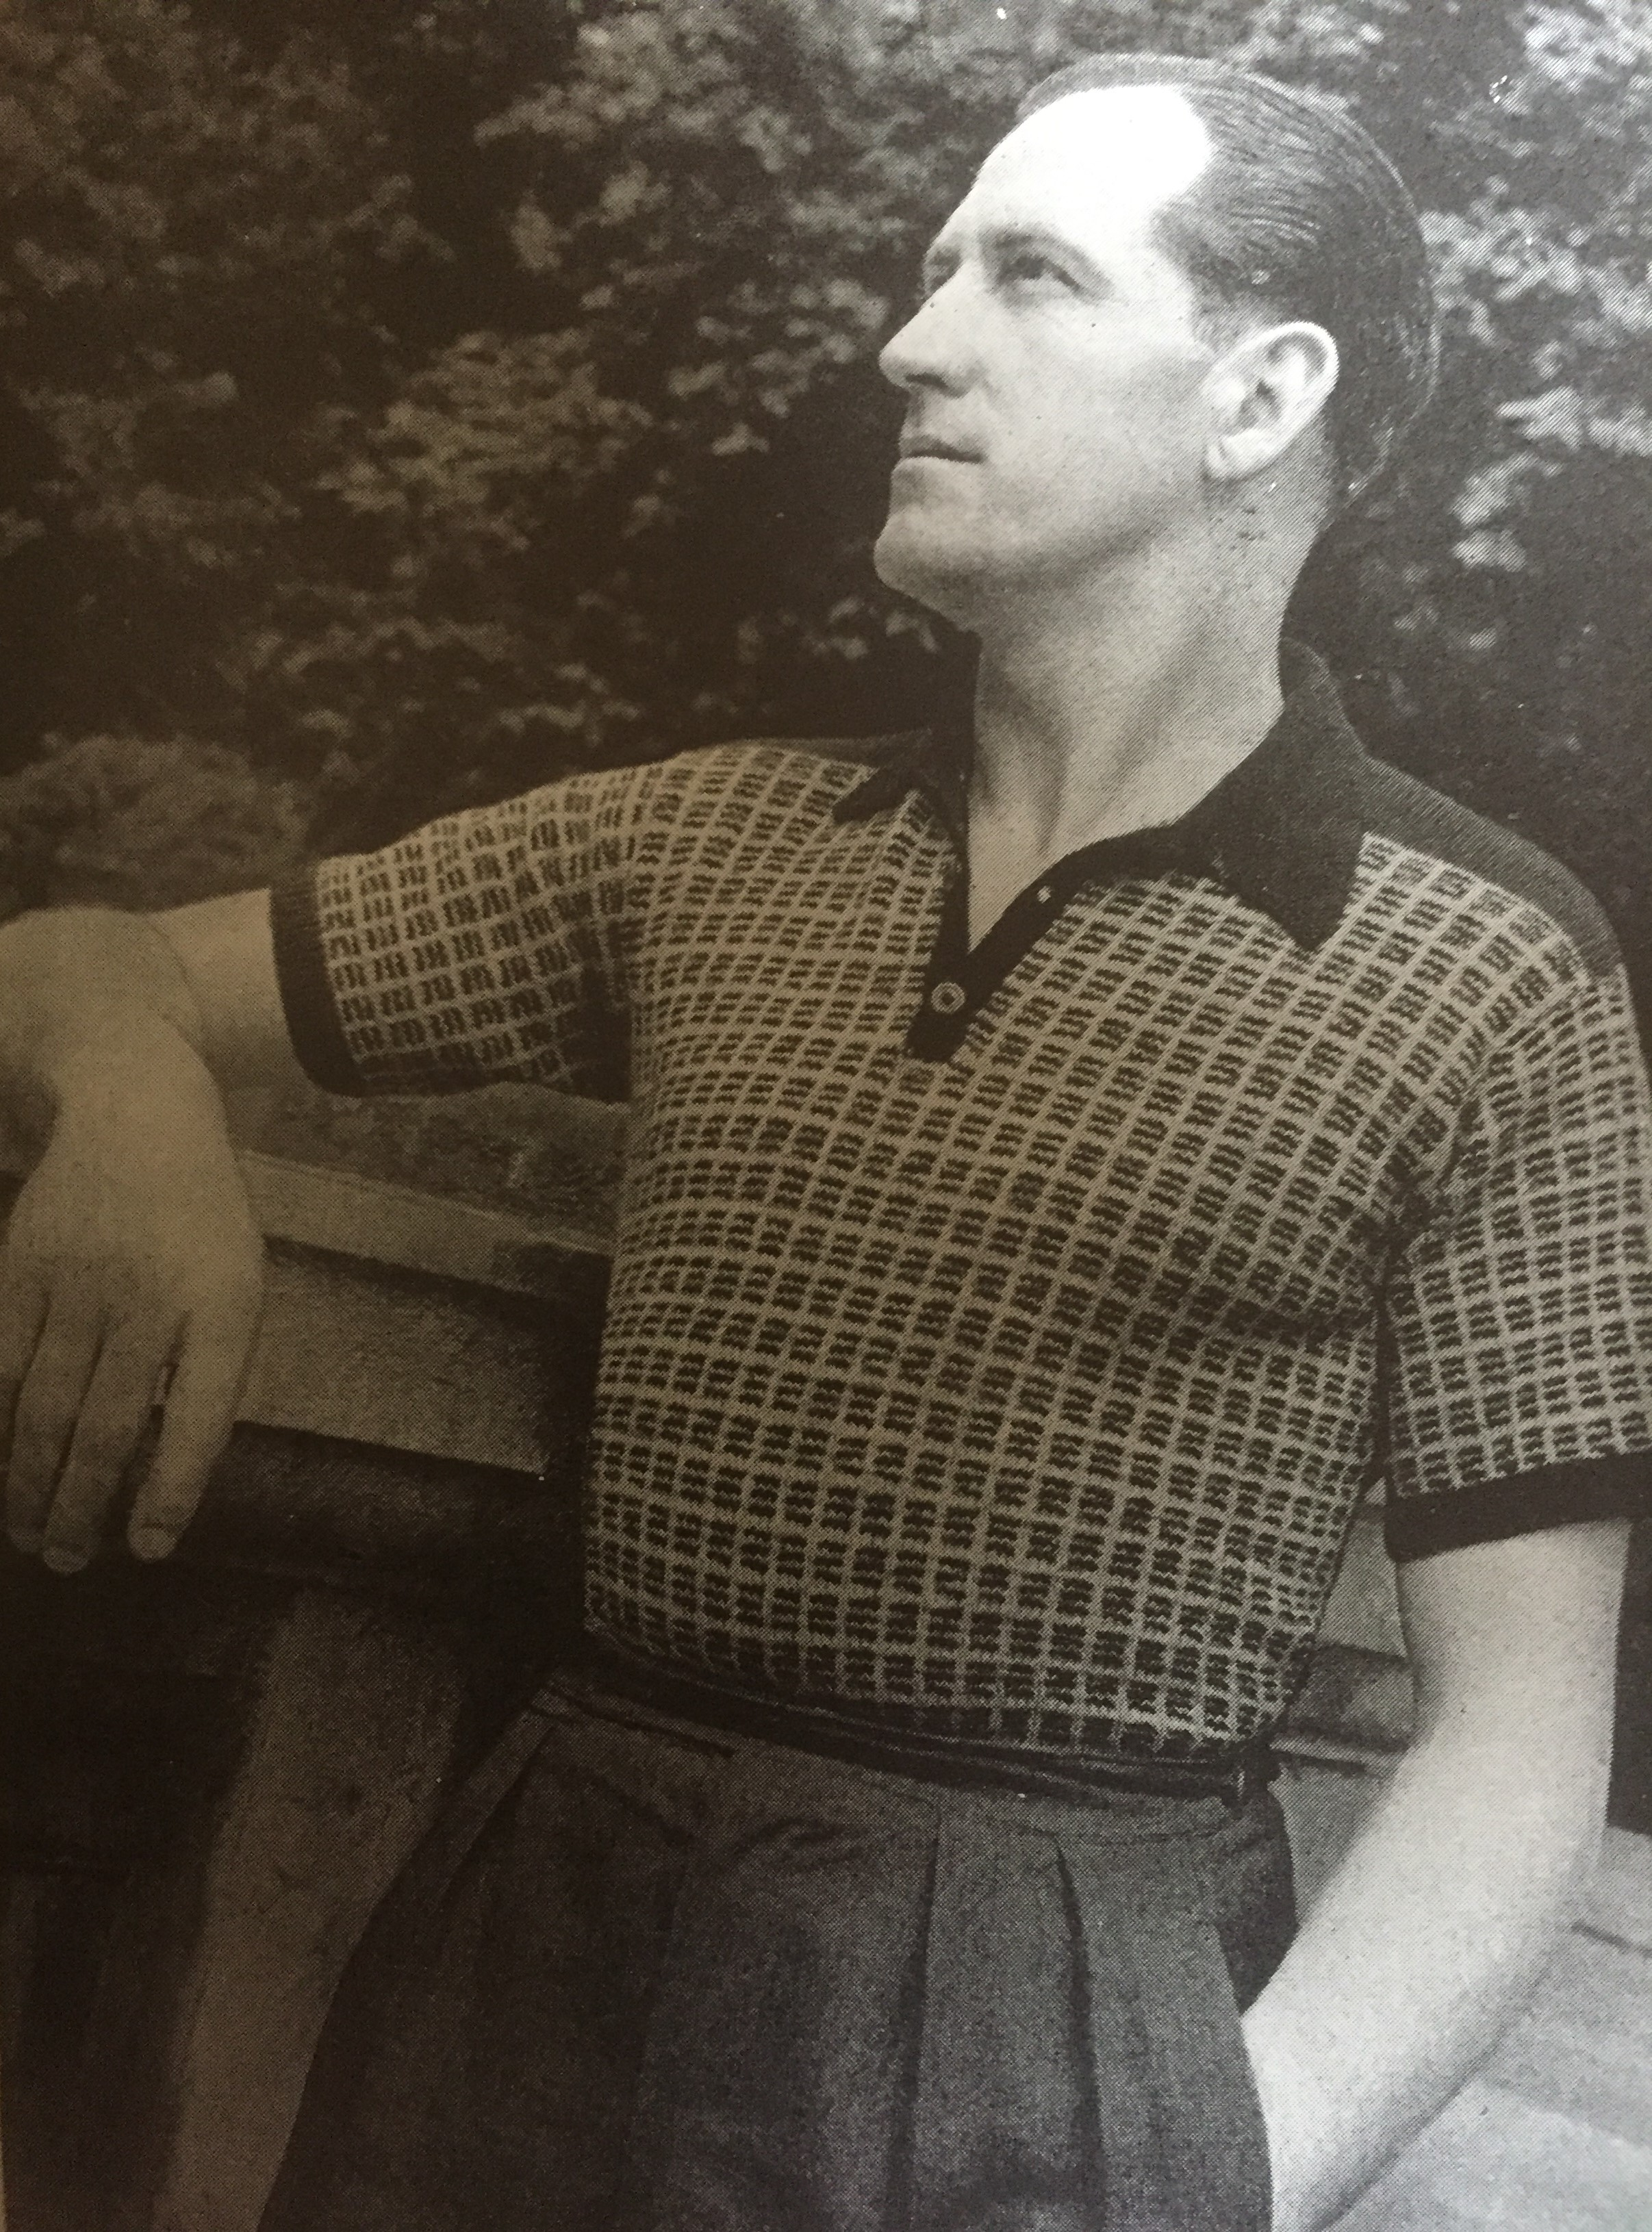 Vintage photo of male knitting pattern model staring into the distance